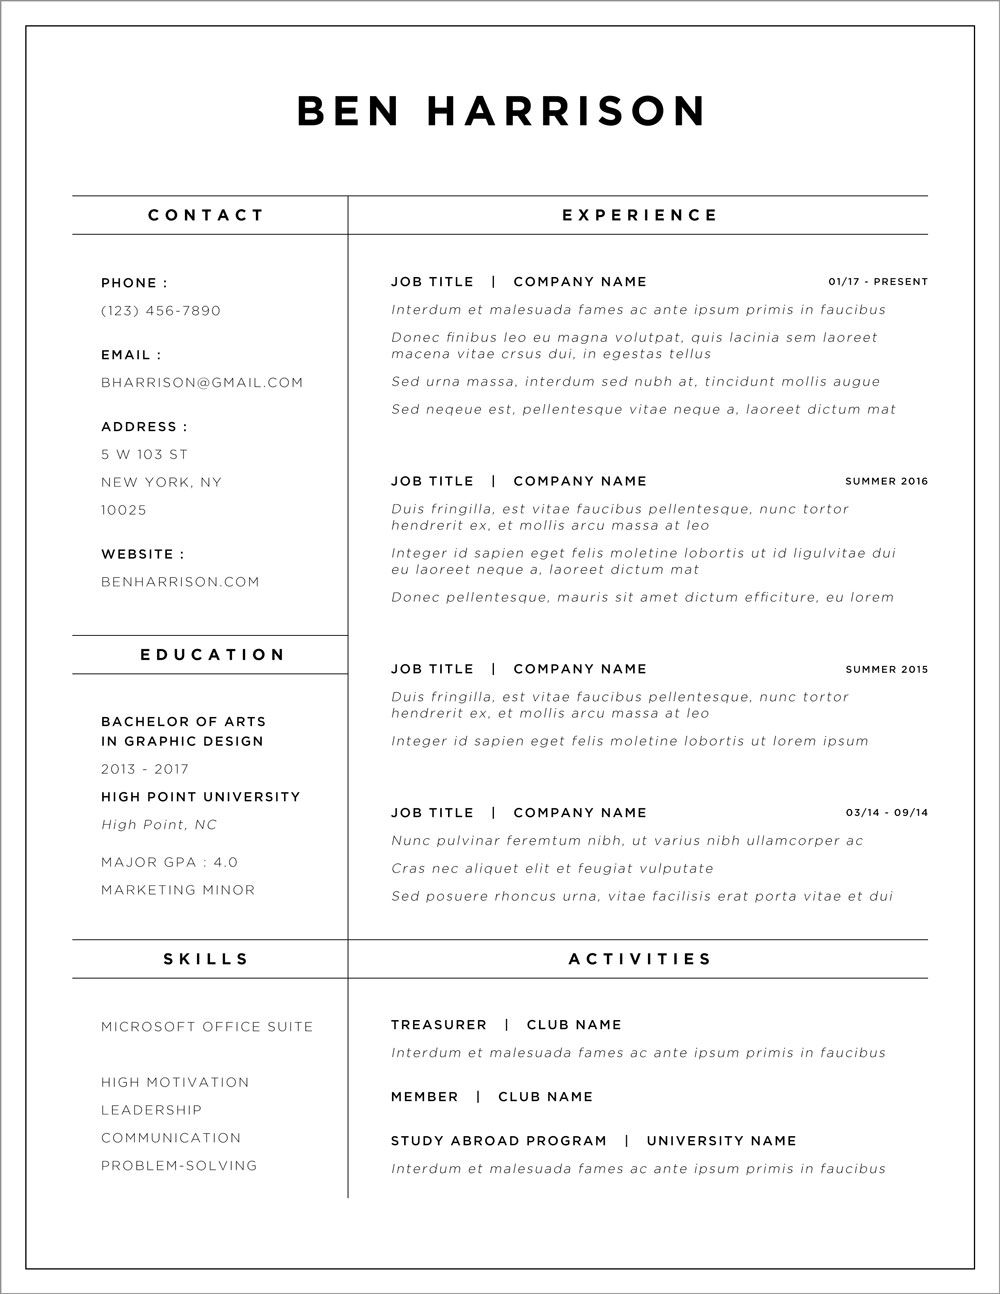 Resume design services, resume design template, resume